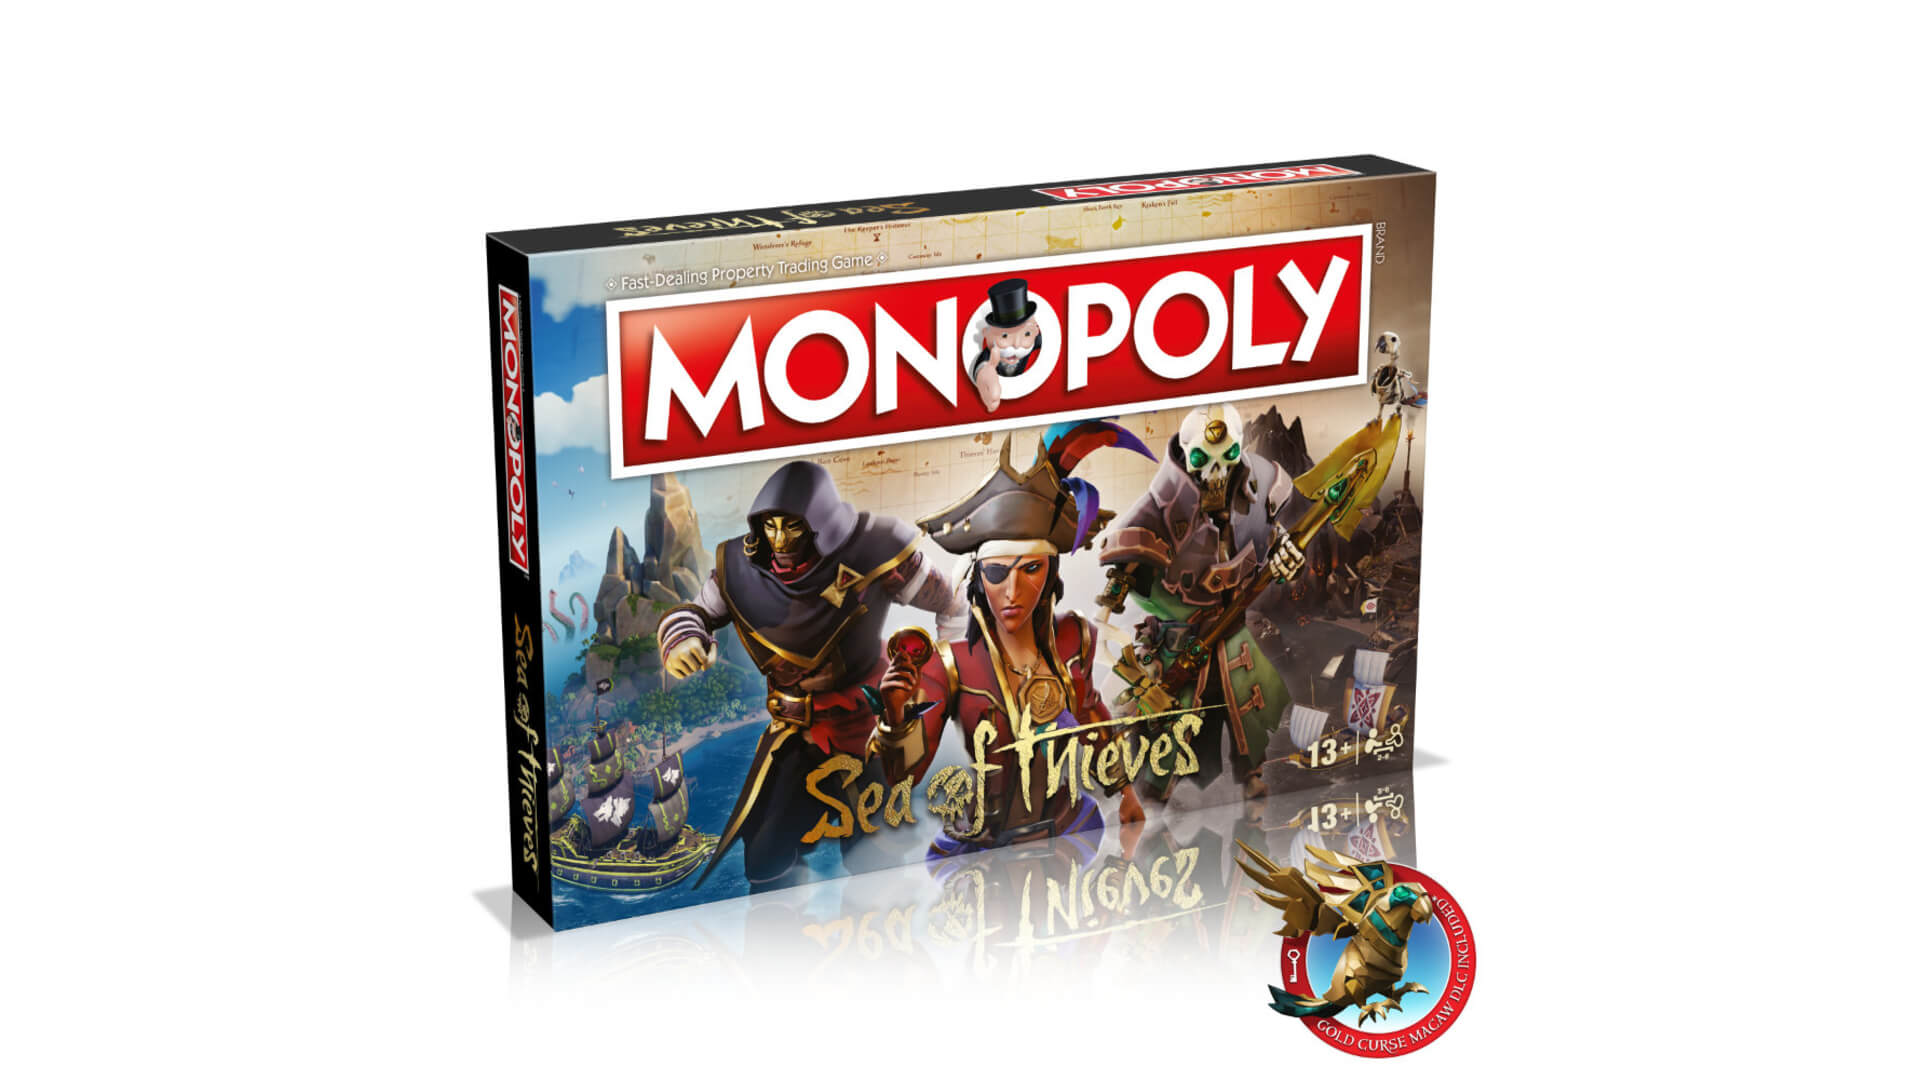 Sea Of Thieves Gets Its Own Monopoly Set